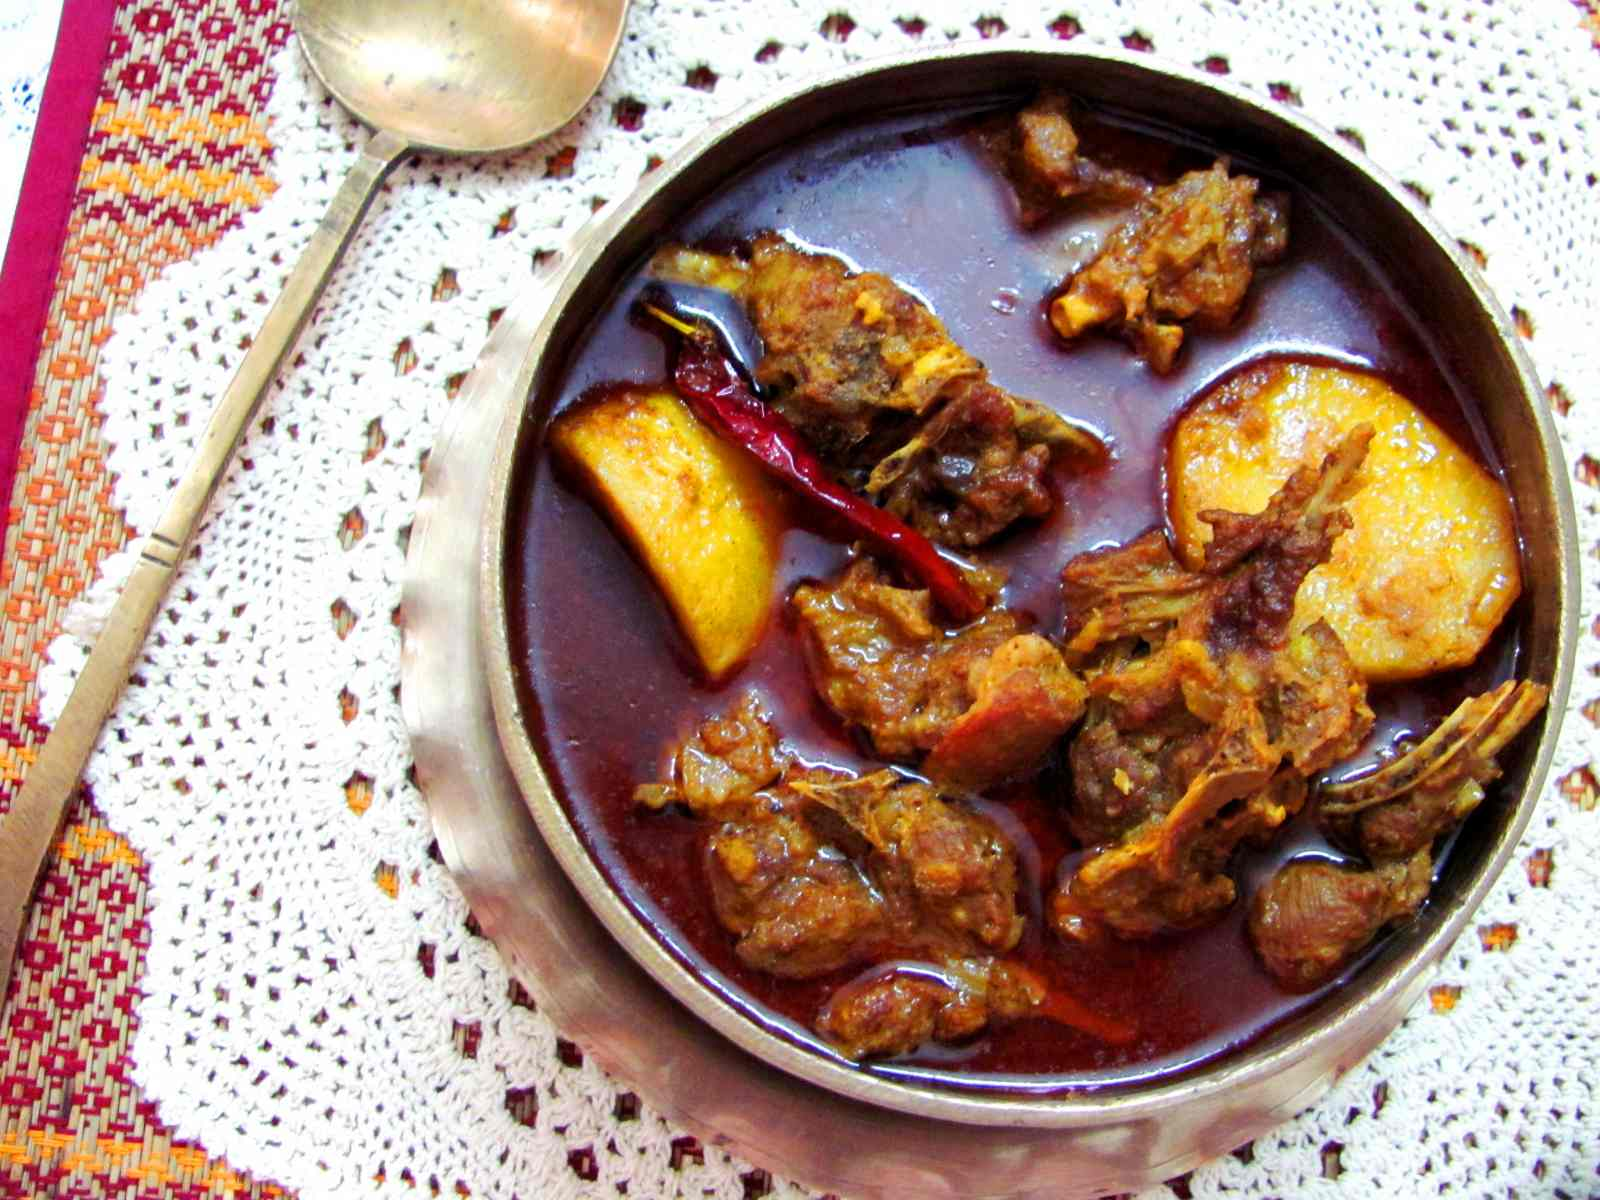 Mangsher jhol recipe bengali style mutton curry by archanas kitchen mangsher jhol recipe bengali style mutton curry forumfinder Image collections